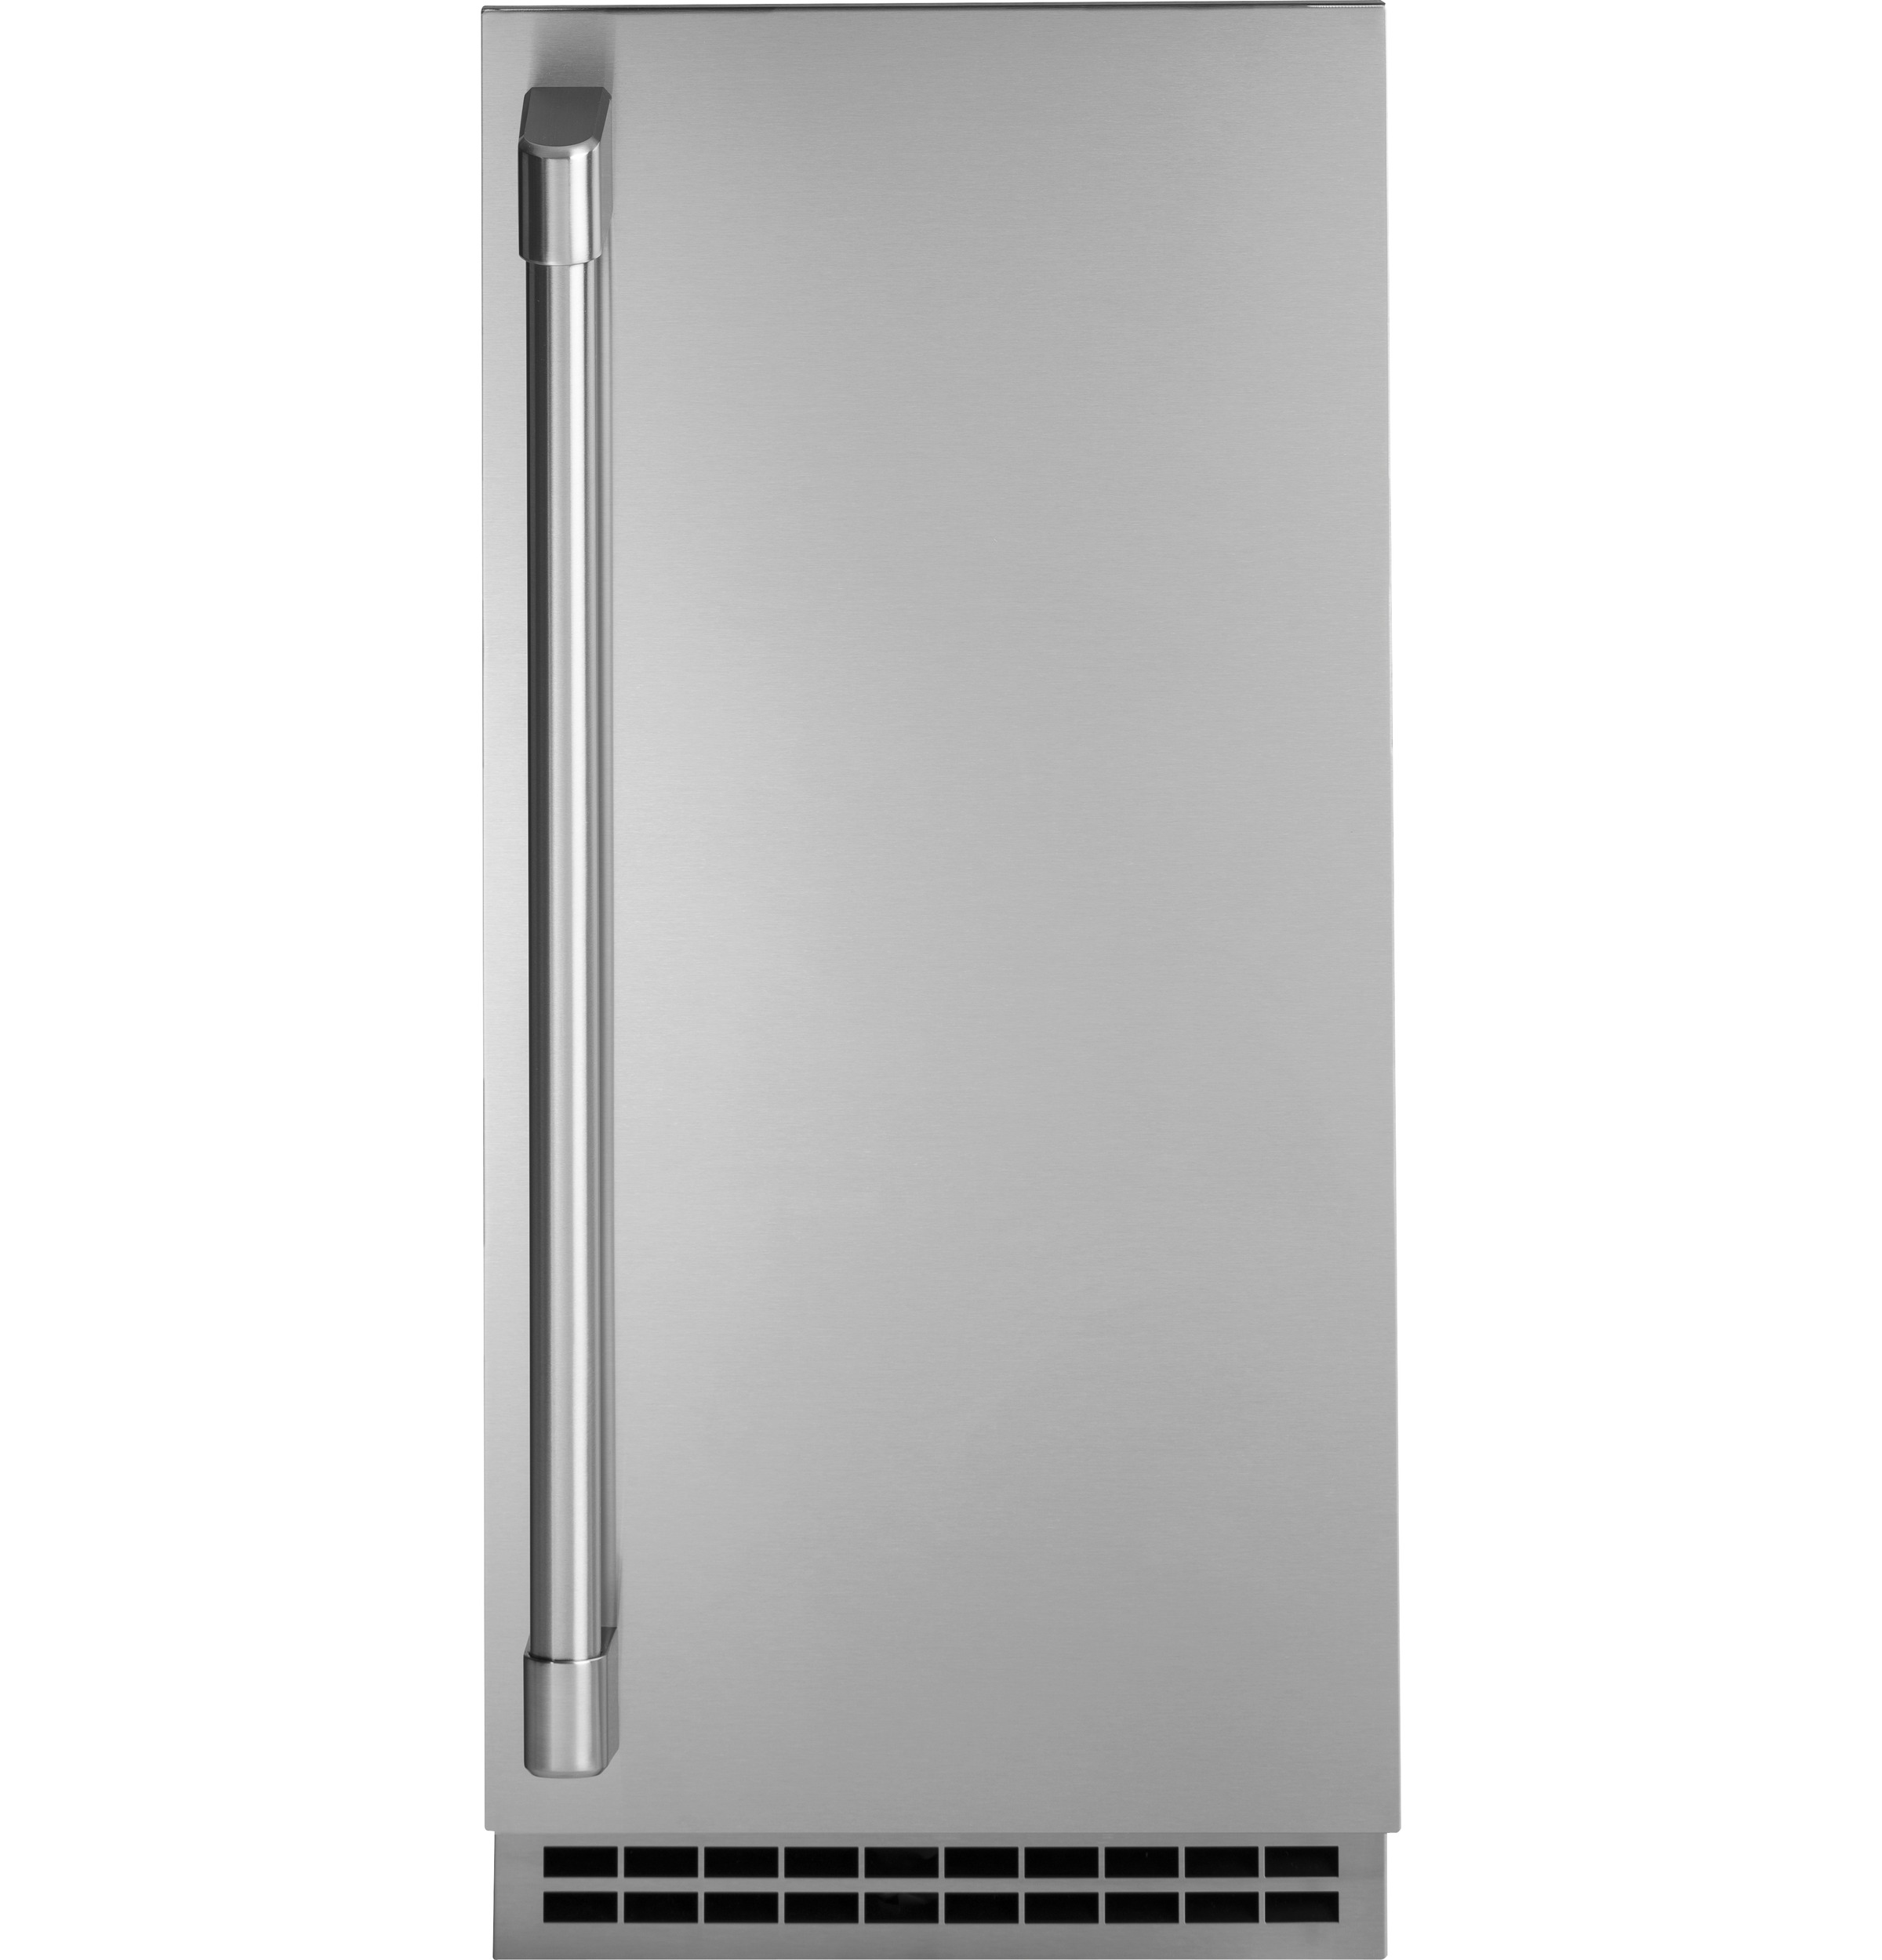 Monogram Ice Maker in Pannel-Ready color showcased by Corbeil Electro Store